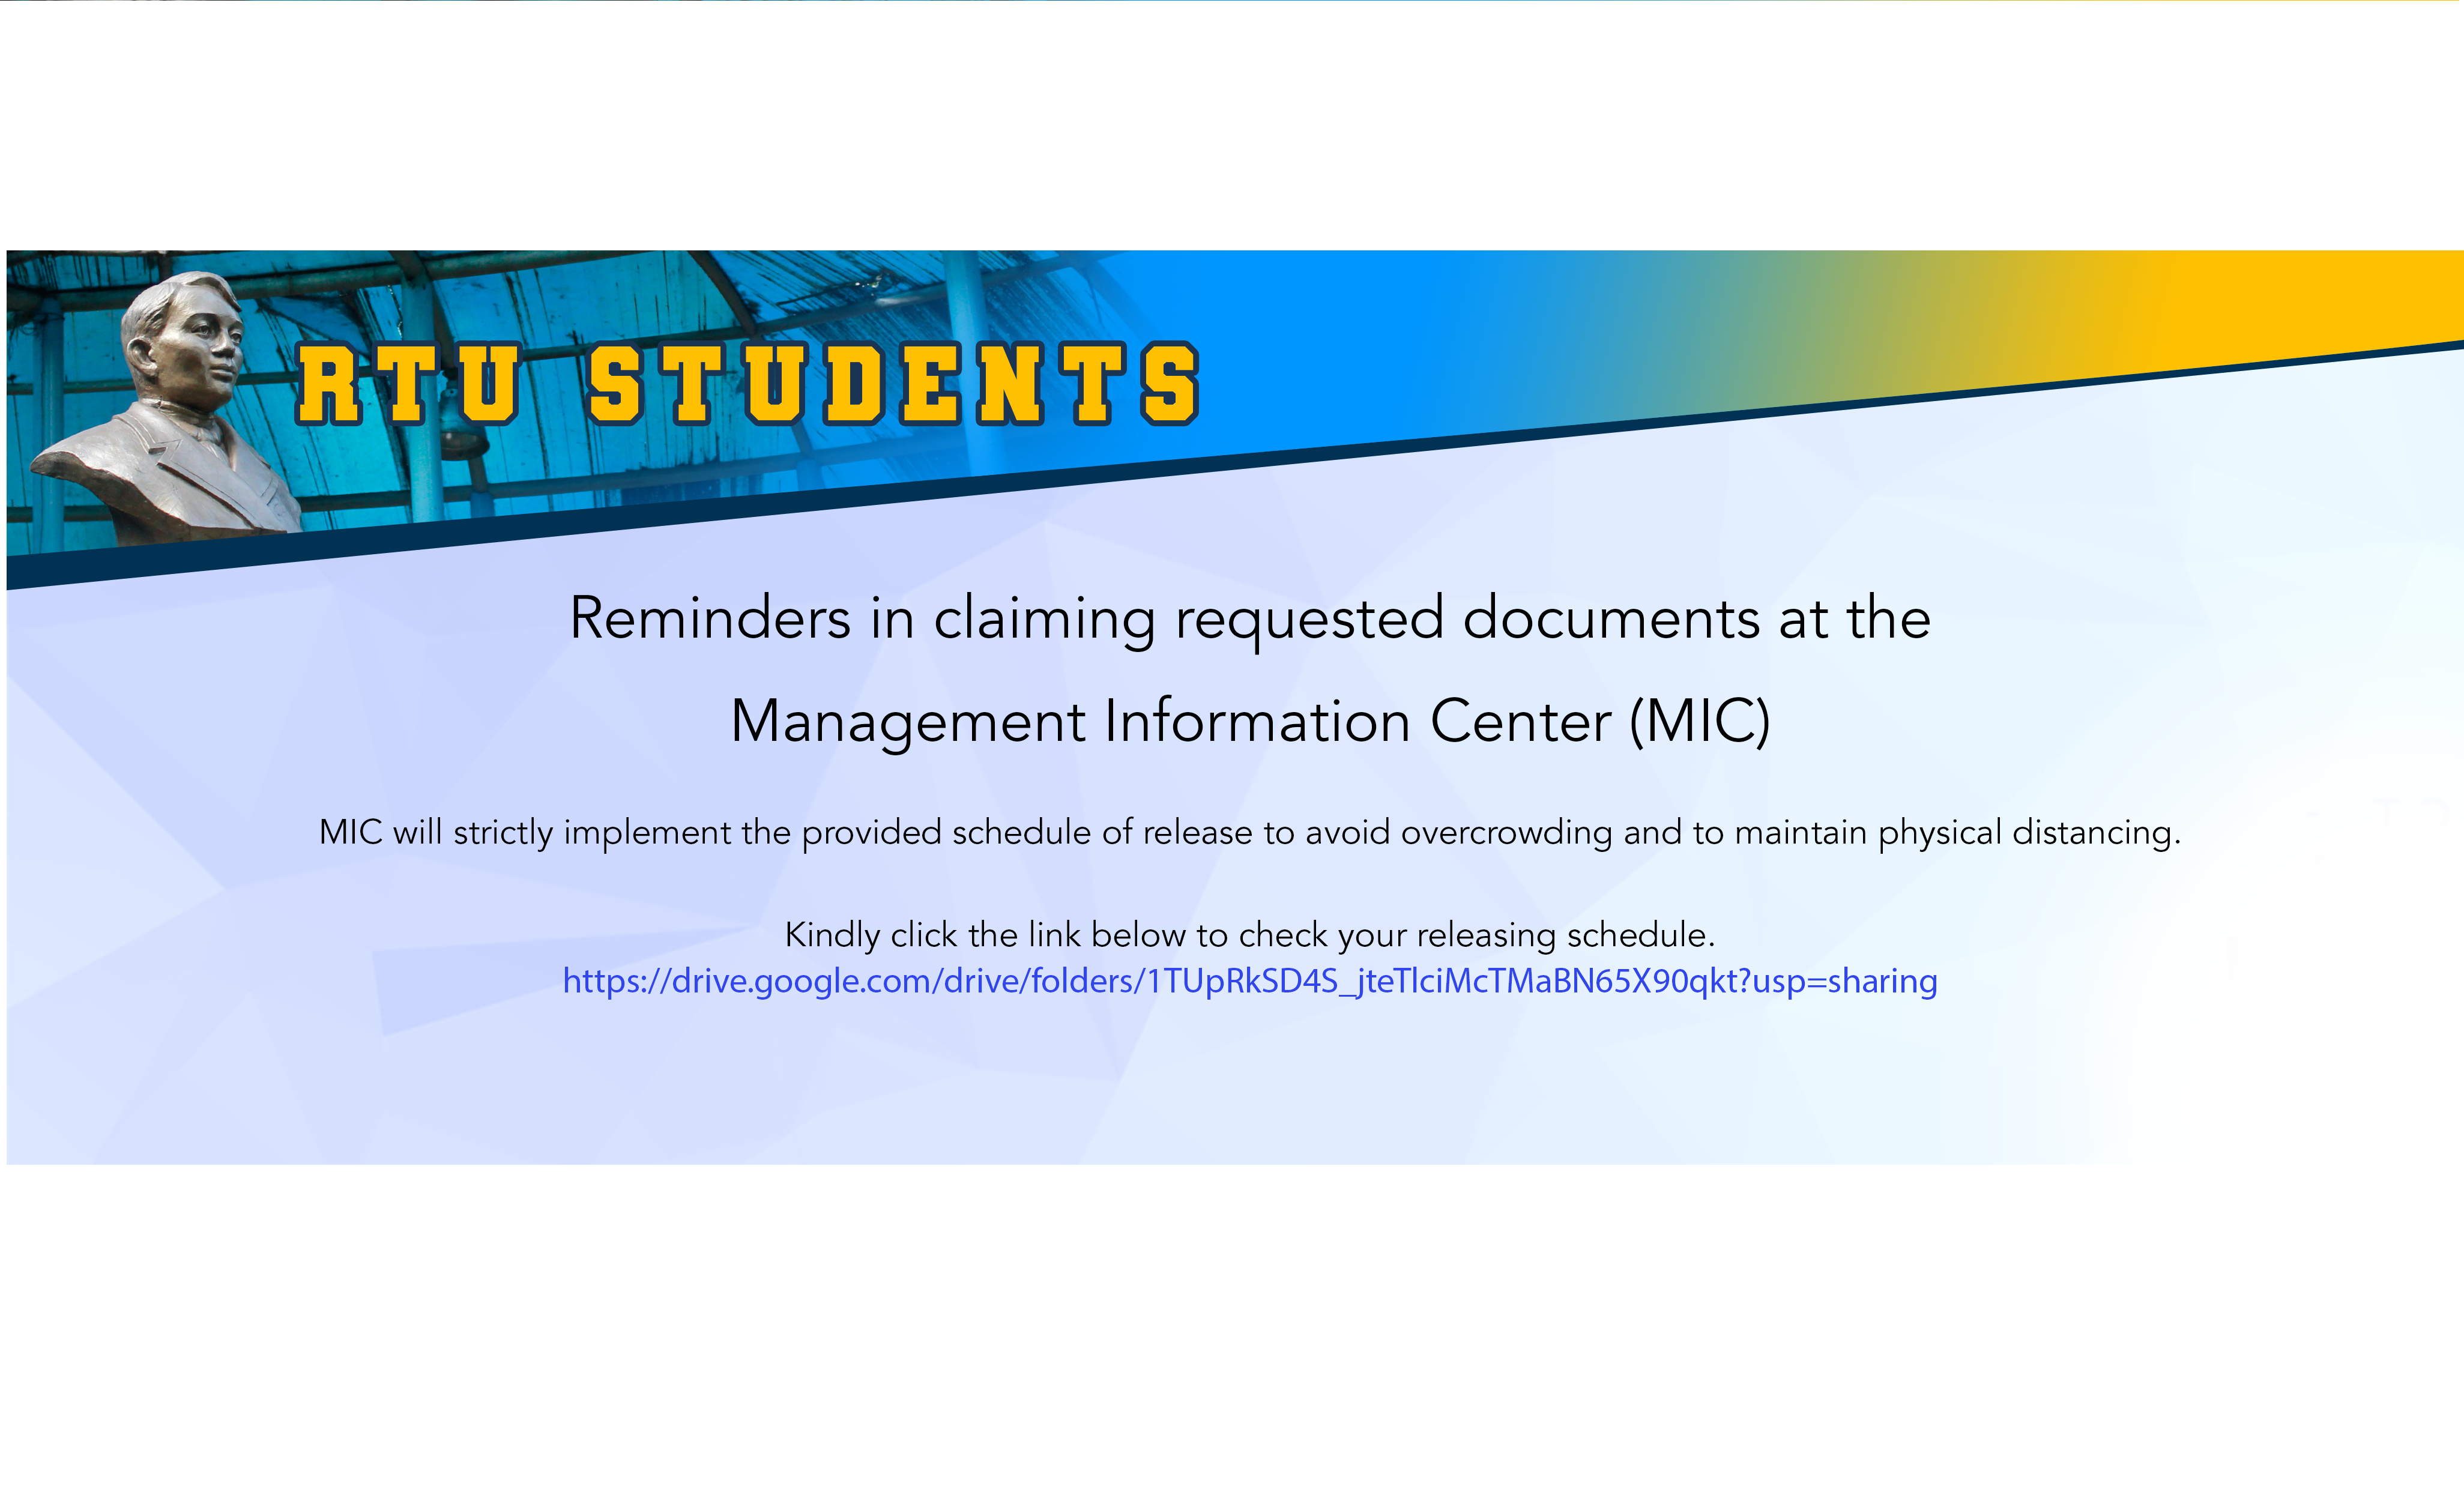 REMINDERS IN CLAIMING REQUESTED DOCUMENTS AT THE MANAGEMENT INFORMATION CENTER(MIC)